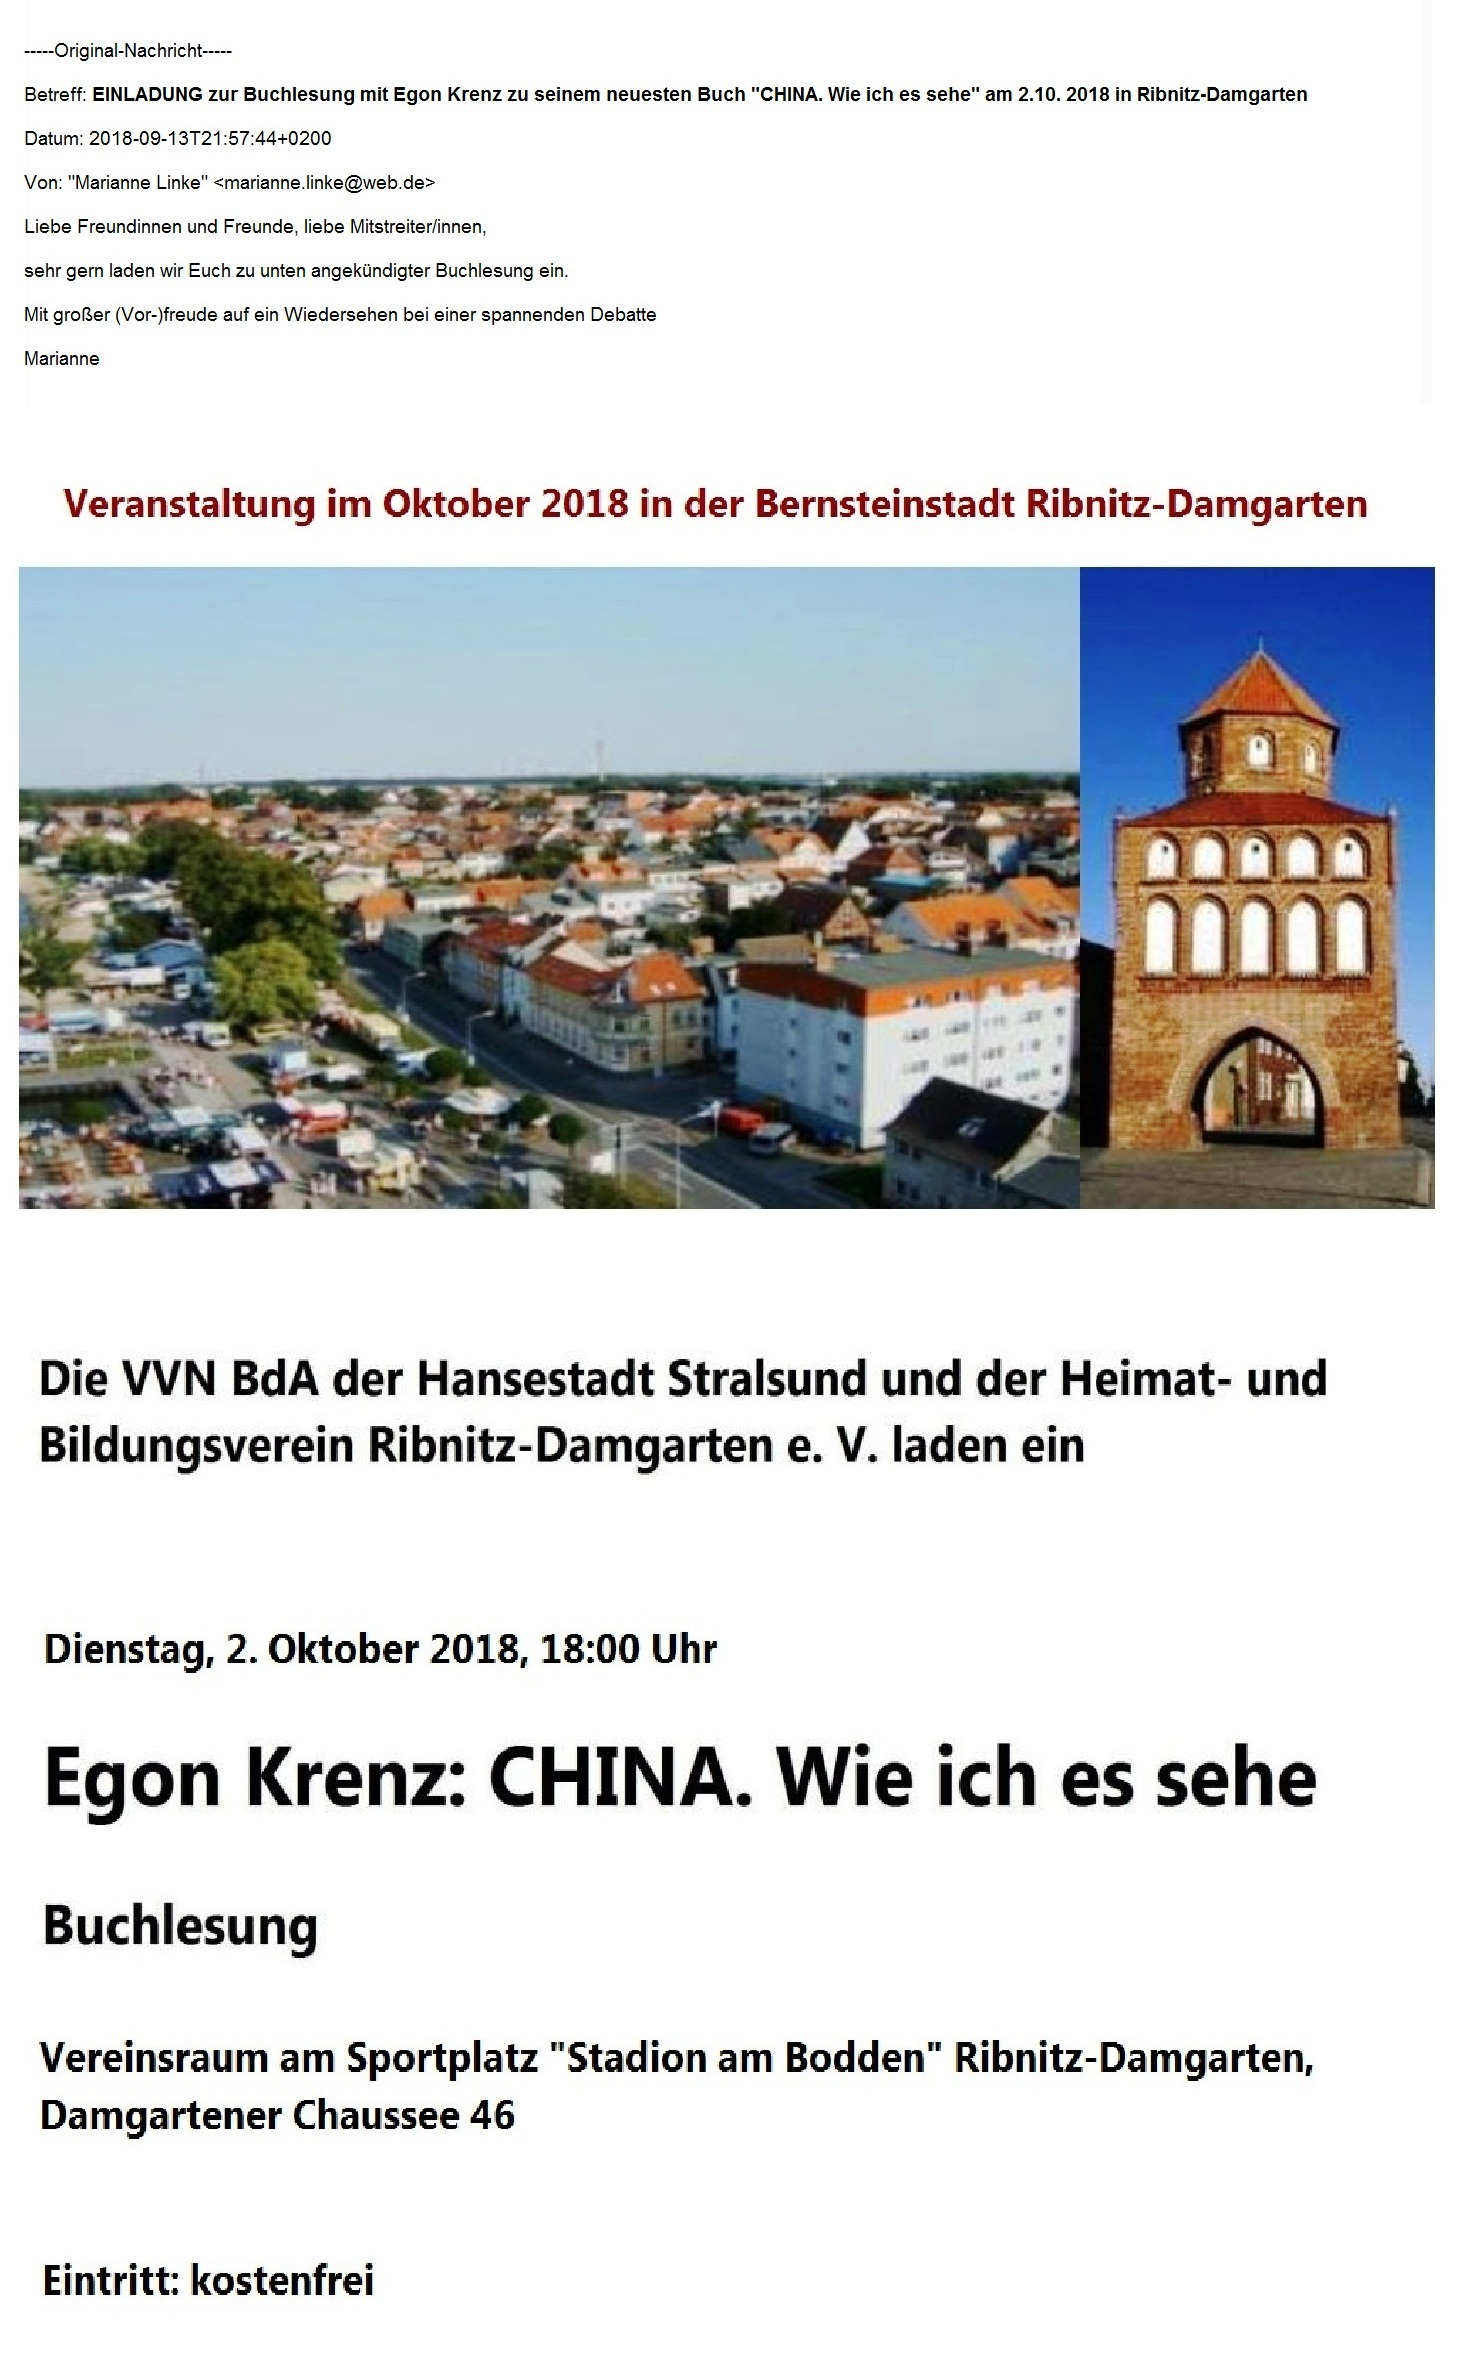 Aus dem Posteingang von Dr. Marianne Linke -  Die VVN BdA der Hansestadt Stralsund und der Heimat- und Bildungsverein Ribnitz-Damgarten e. V. laden ein zur Buchlesung mit Egon Krenz zu seinem neuesten Buch 'CHINA. Wie ich es sehe.' - Gemeinsame Veranstaltung der VVN BdA der Hansestadt Stralsund und des Heimat- und Bildungsvereins Ribnitz-Damgarten e. V. am 2. Oktober 2018 um 18:00 Uhr im Vereinsraum am Sportplatz 'Stadion am Bodden' Ribnitz-Damgarten, Damgartener Chaussee 46 -  Eintritt: kostenfrei